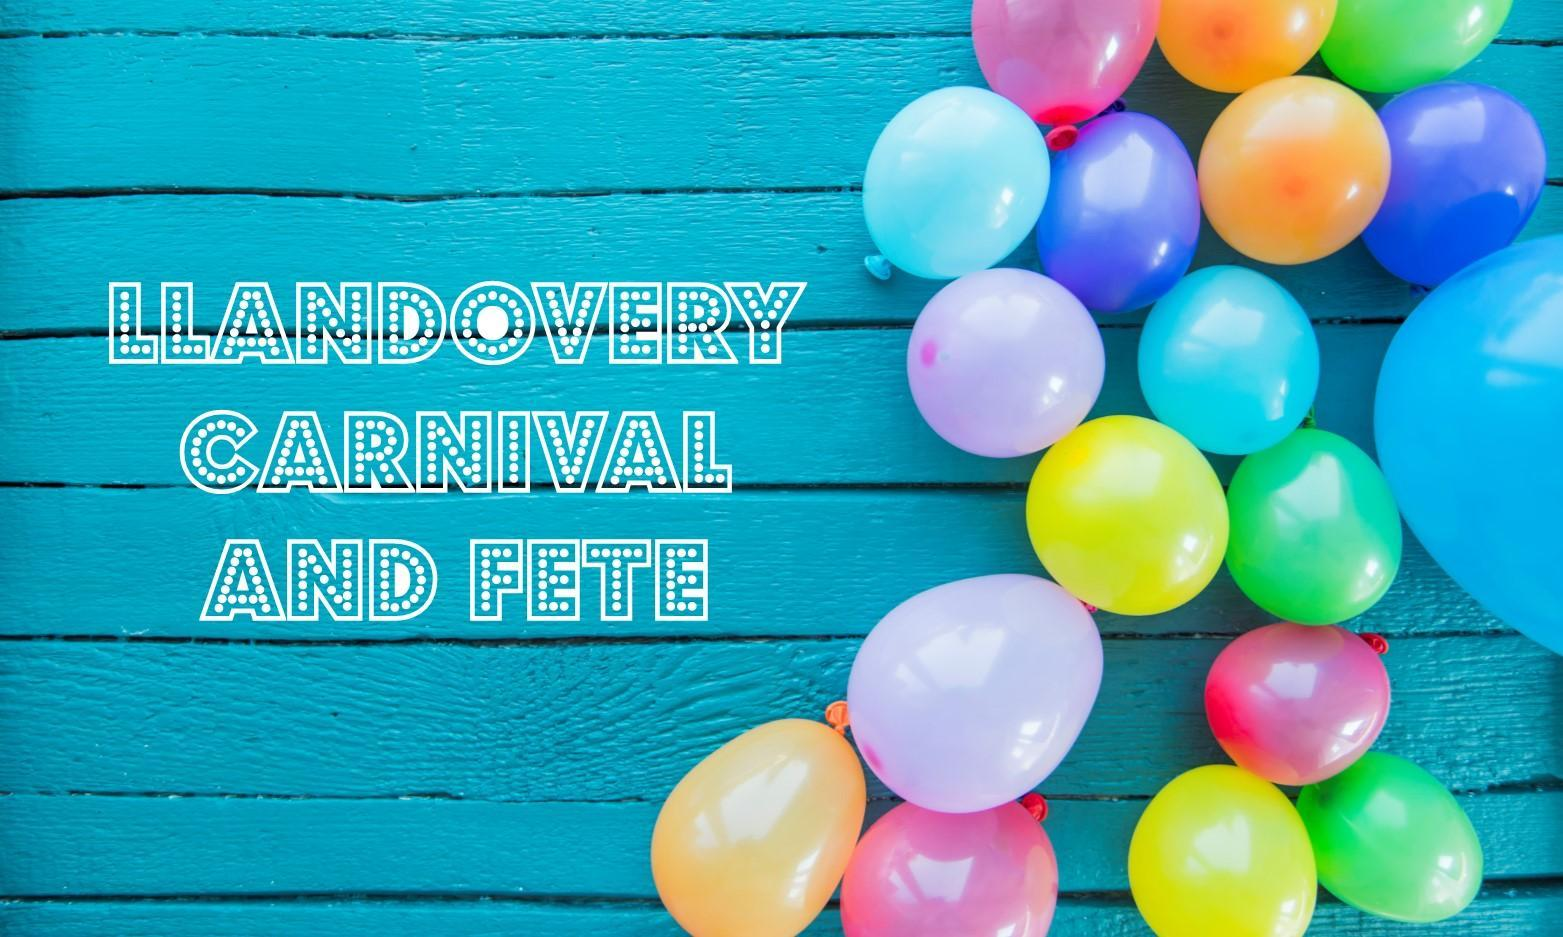 Llandovery Carnival and Fete